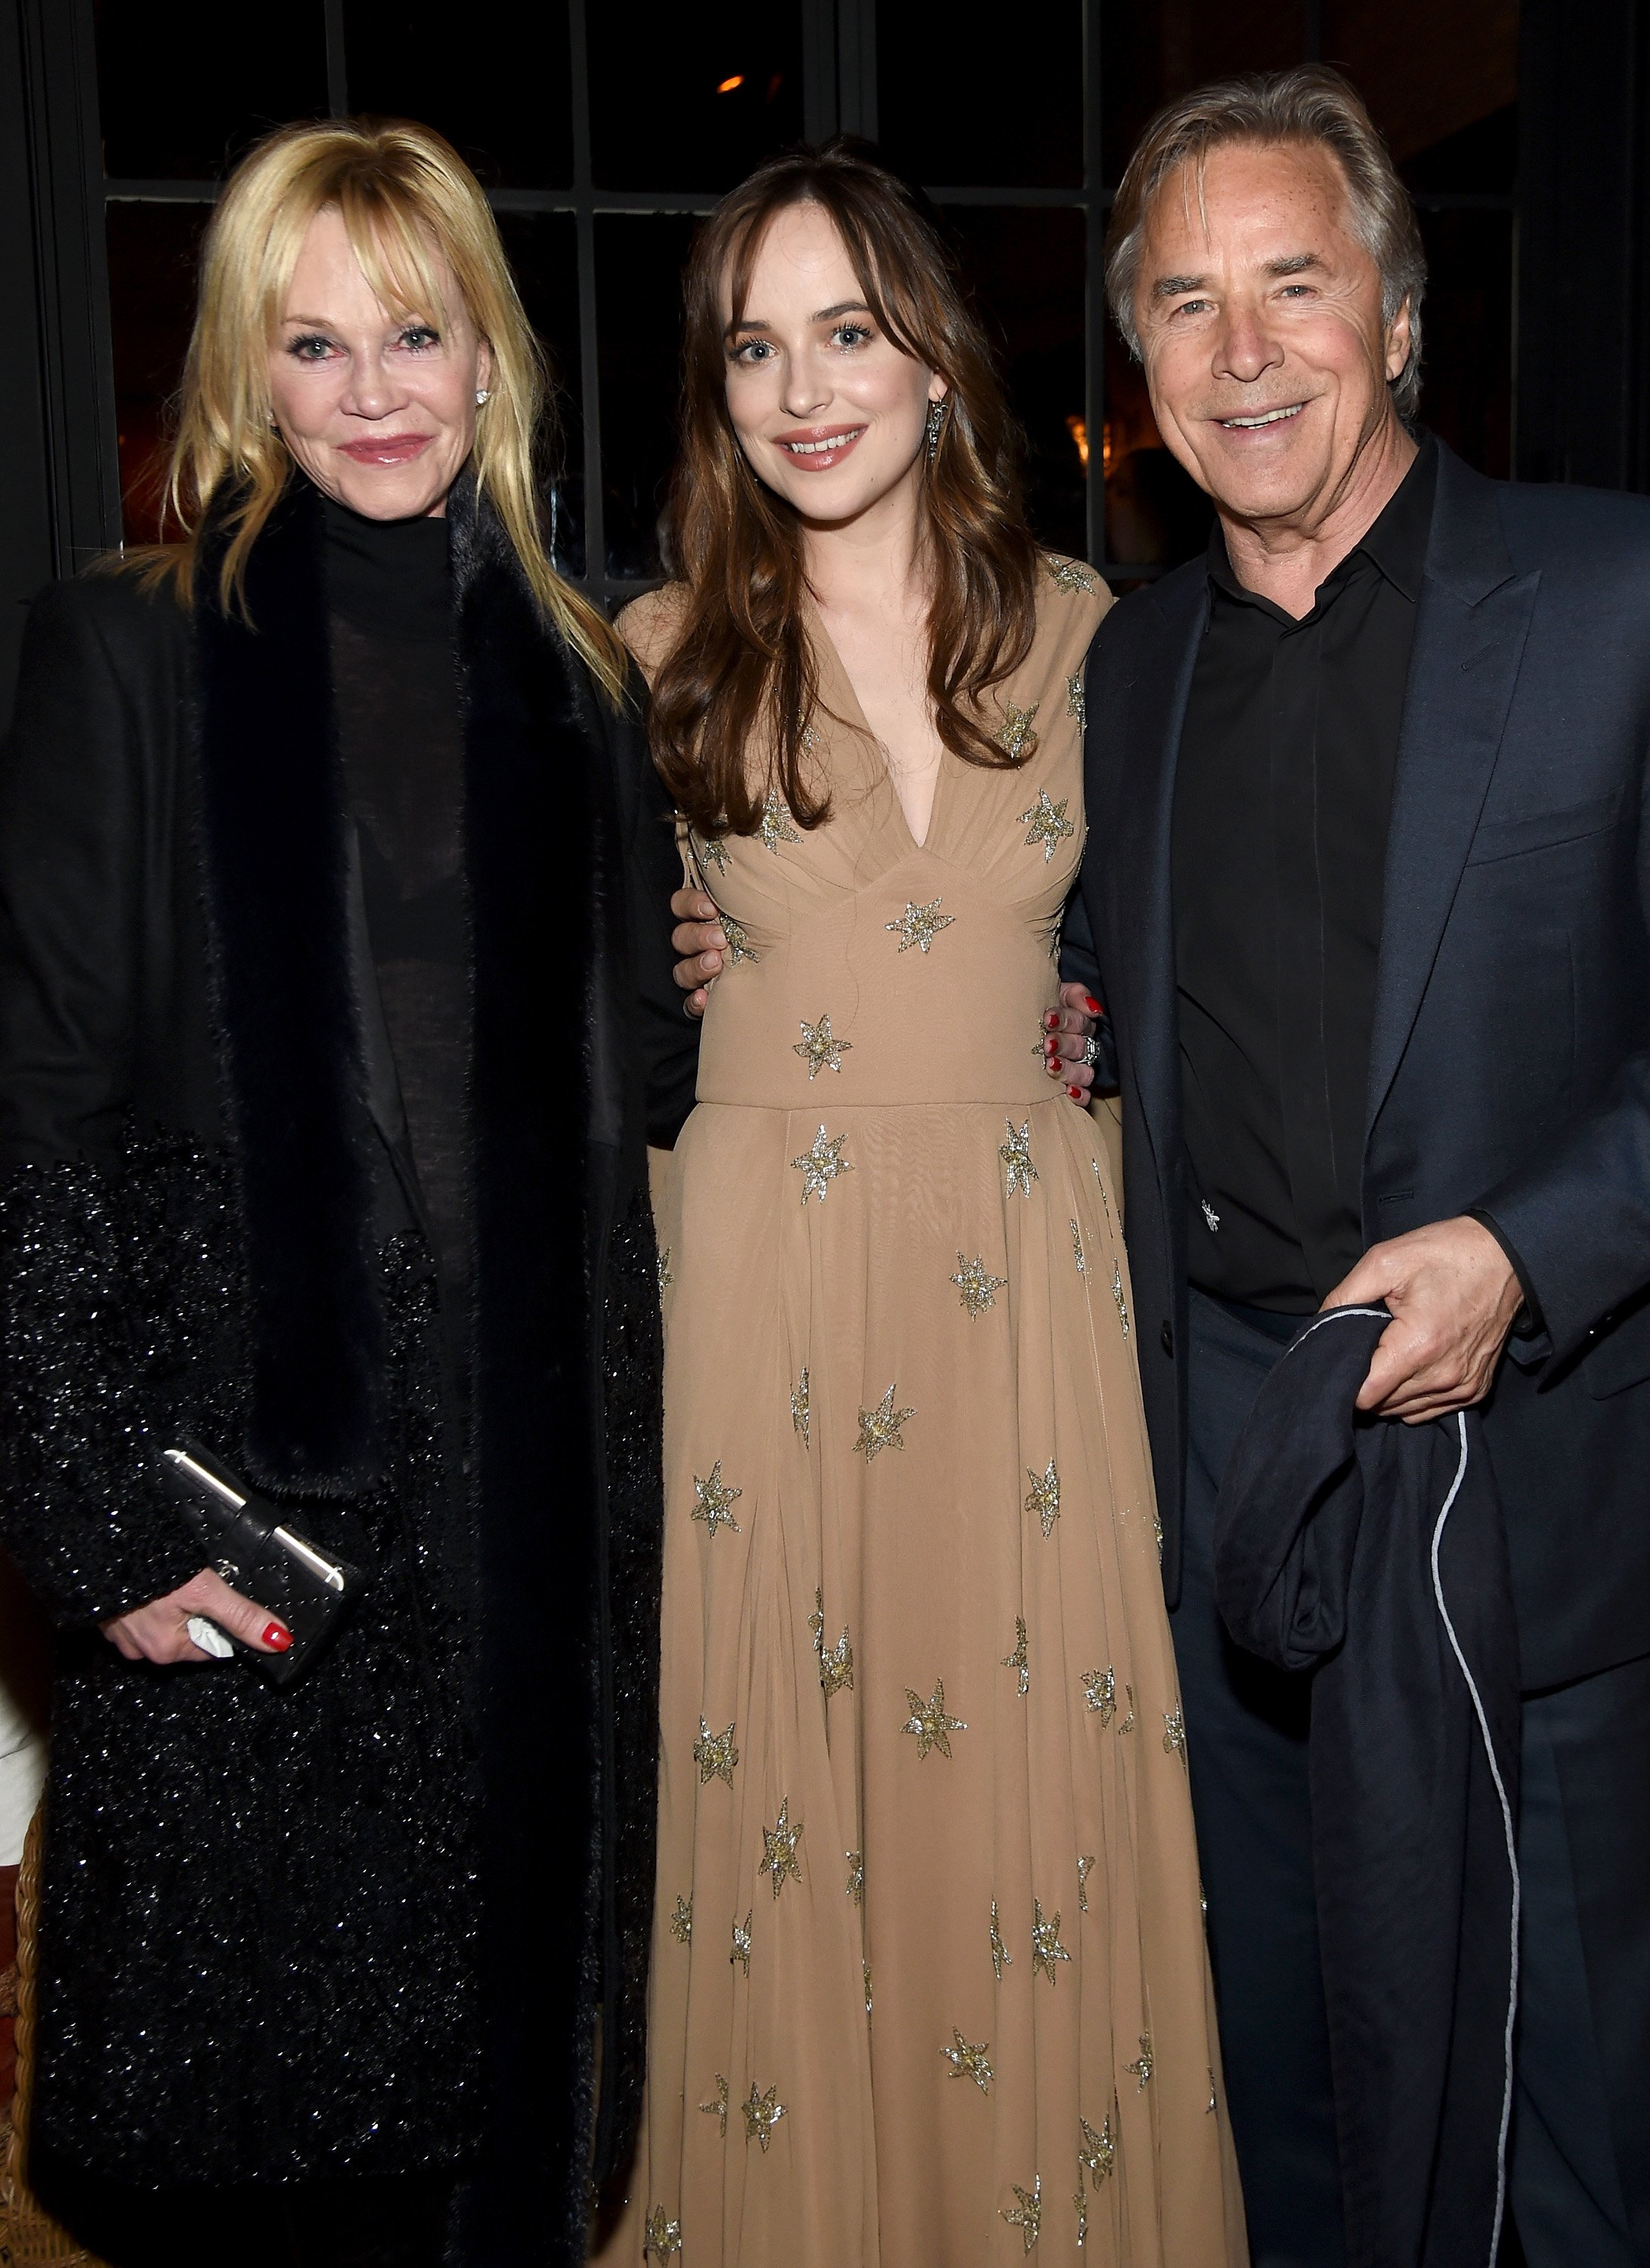 Melanie Griffith, Dakota Johnson, and Don Johnson attend an after party in New York City on February 3, 2016   Photo: Getty Images